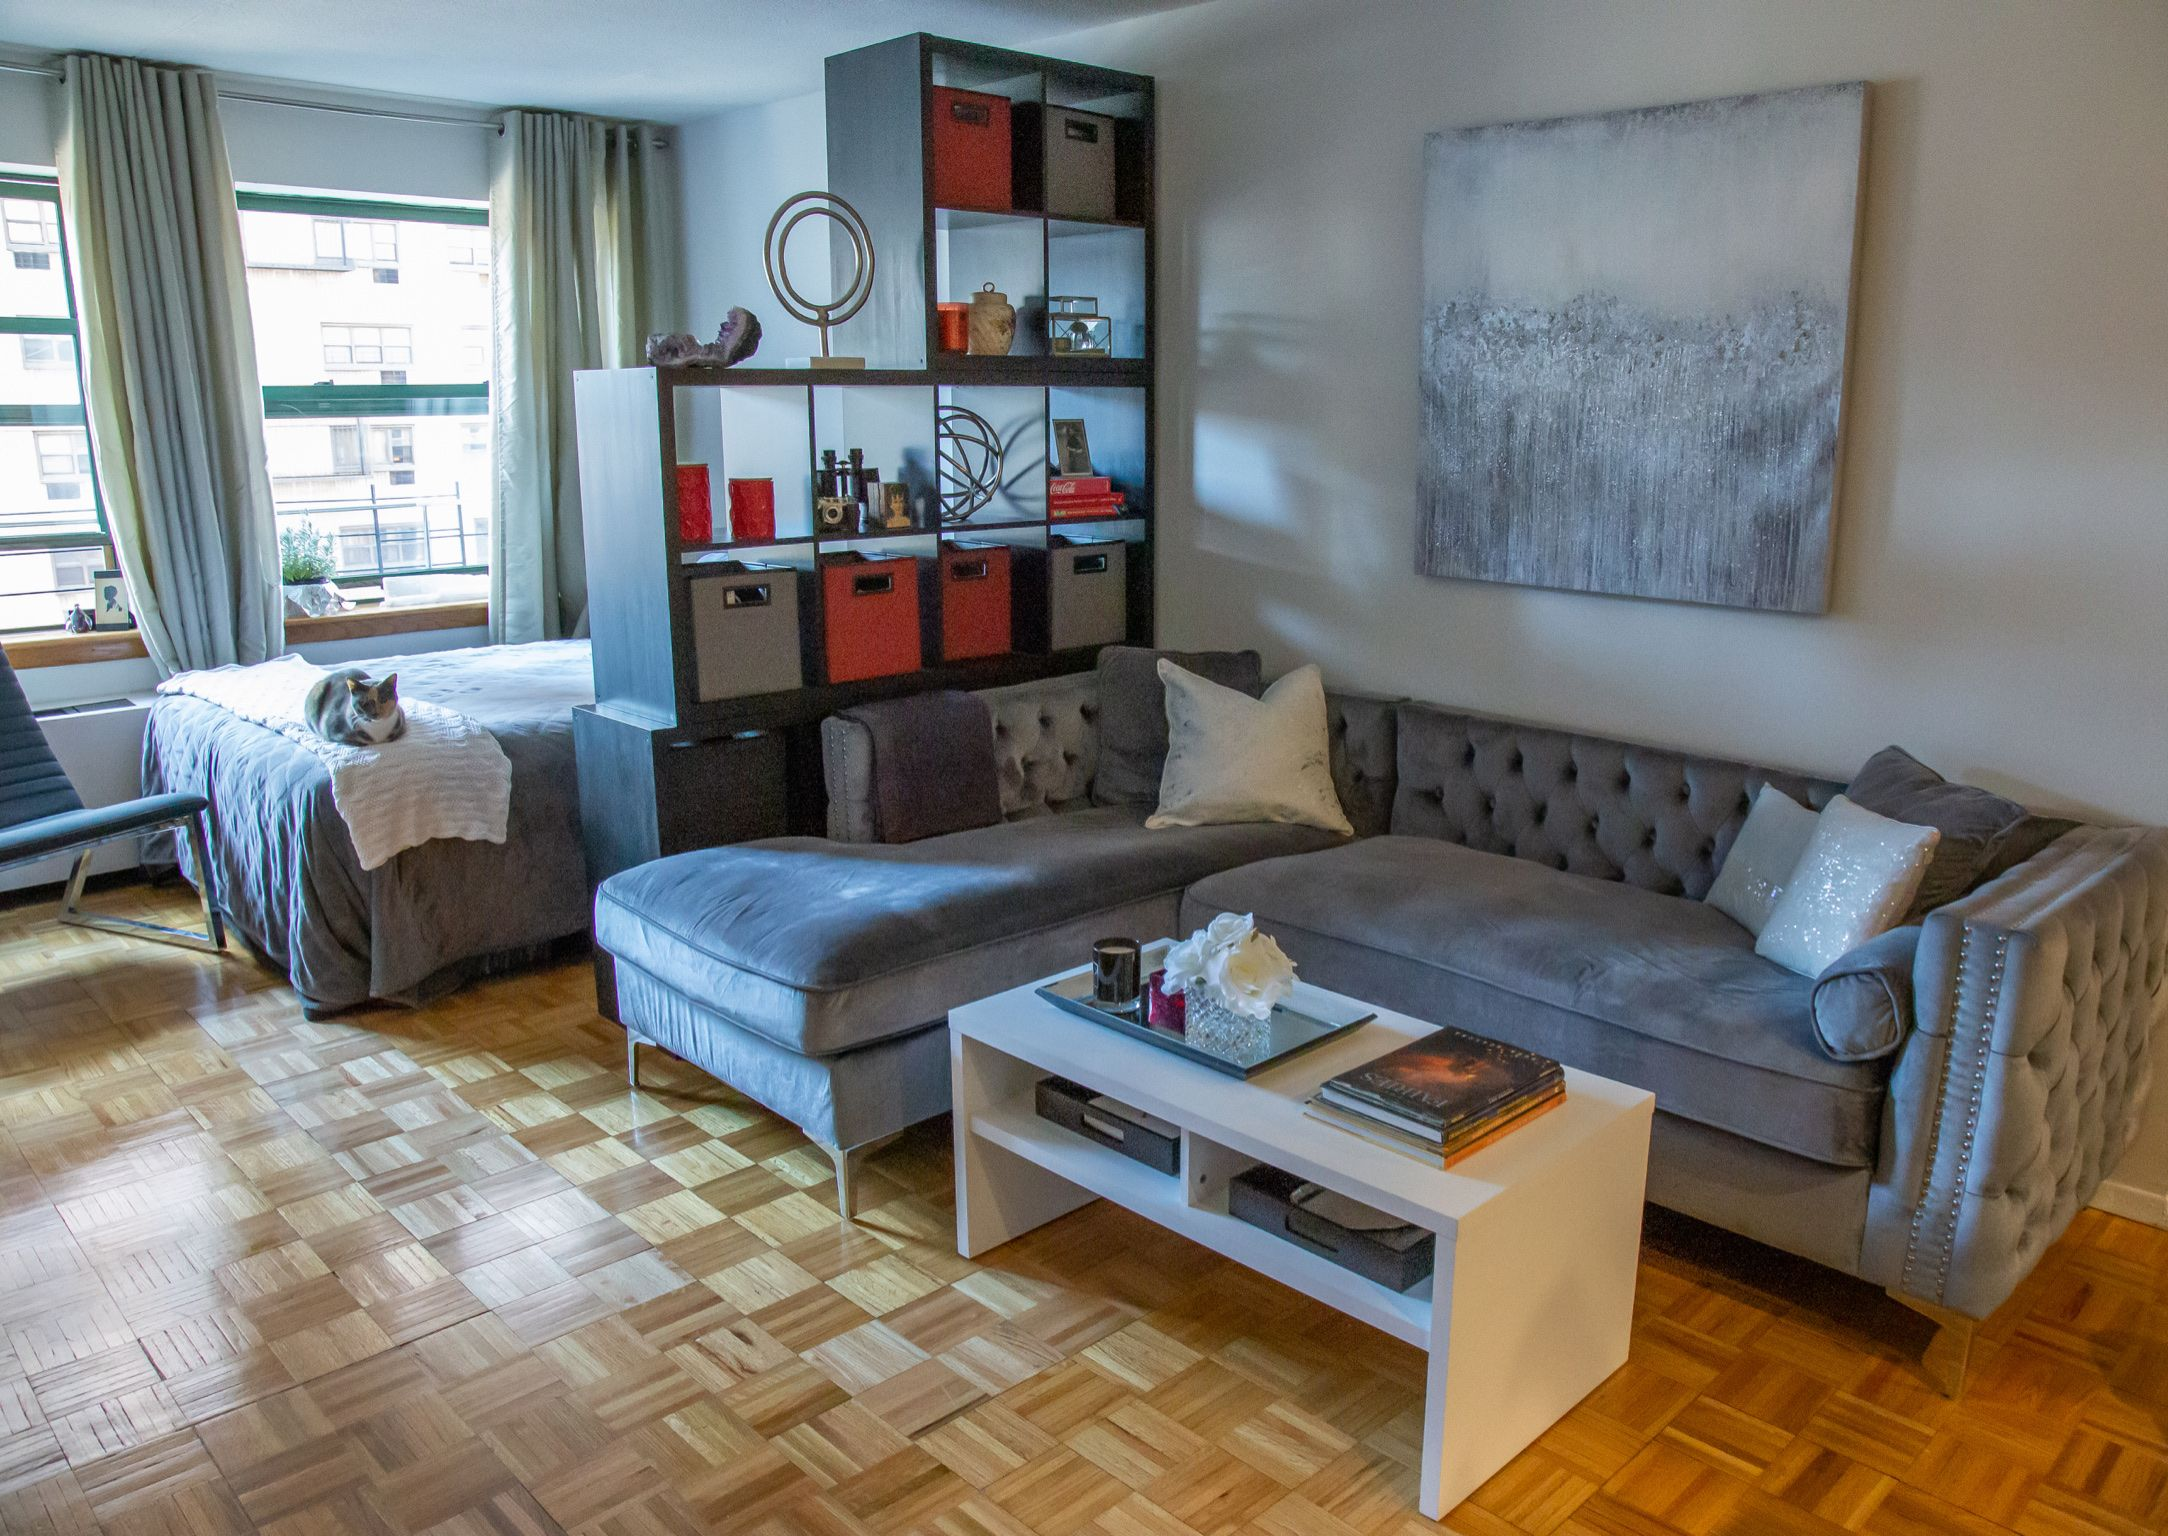 Before And After Barbara Reich Transforms A Nyc Apartment On Wpix One Bedroom Apartment Apartment Decor Nyc Apartment